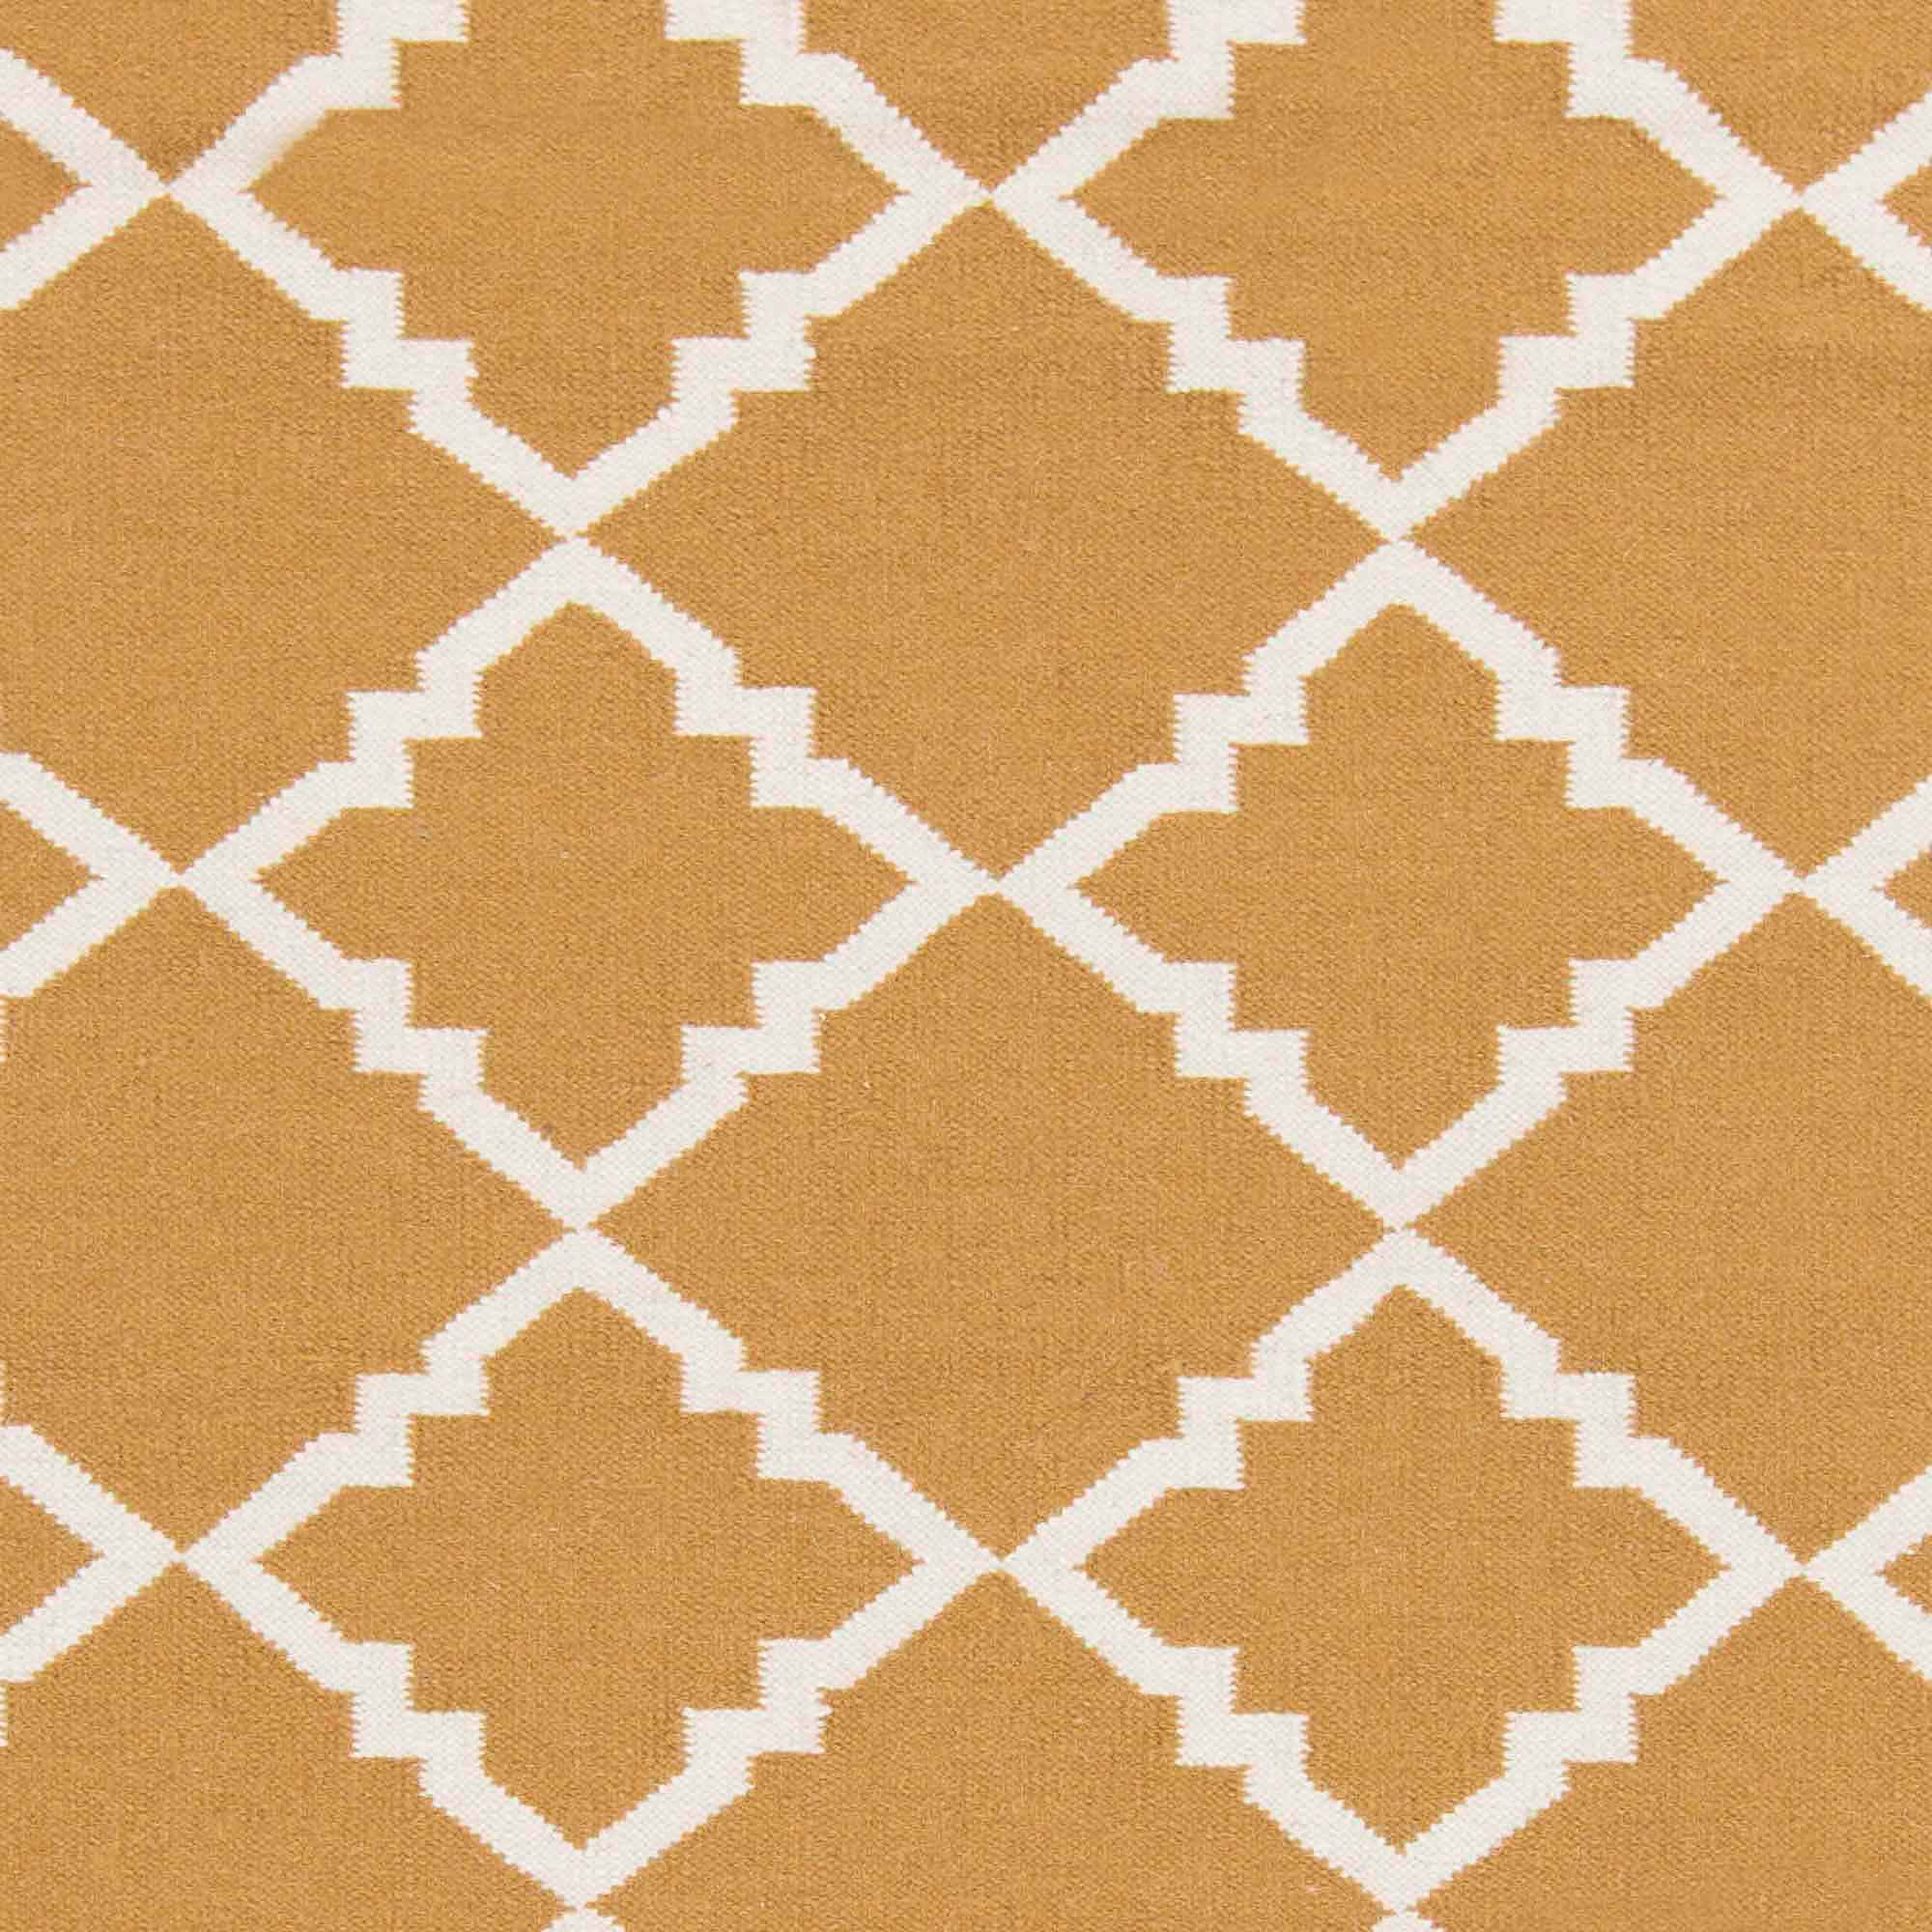 Art of Knot Prichard Hand Woven Gate Scroll Flatweave Wool Area Rug, Golden